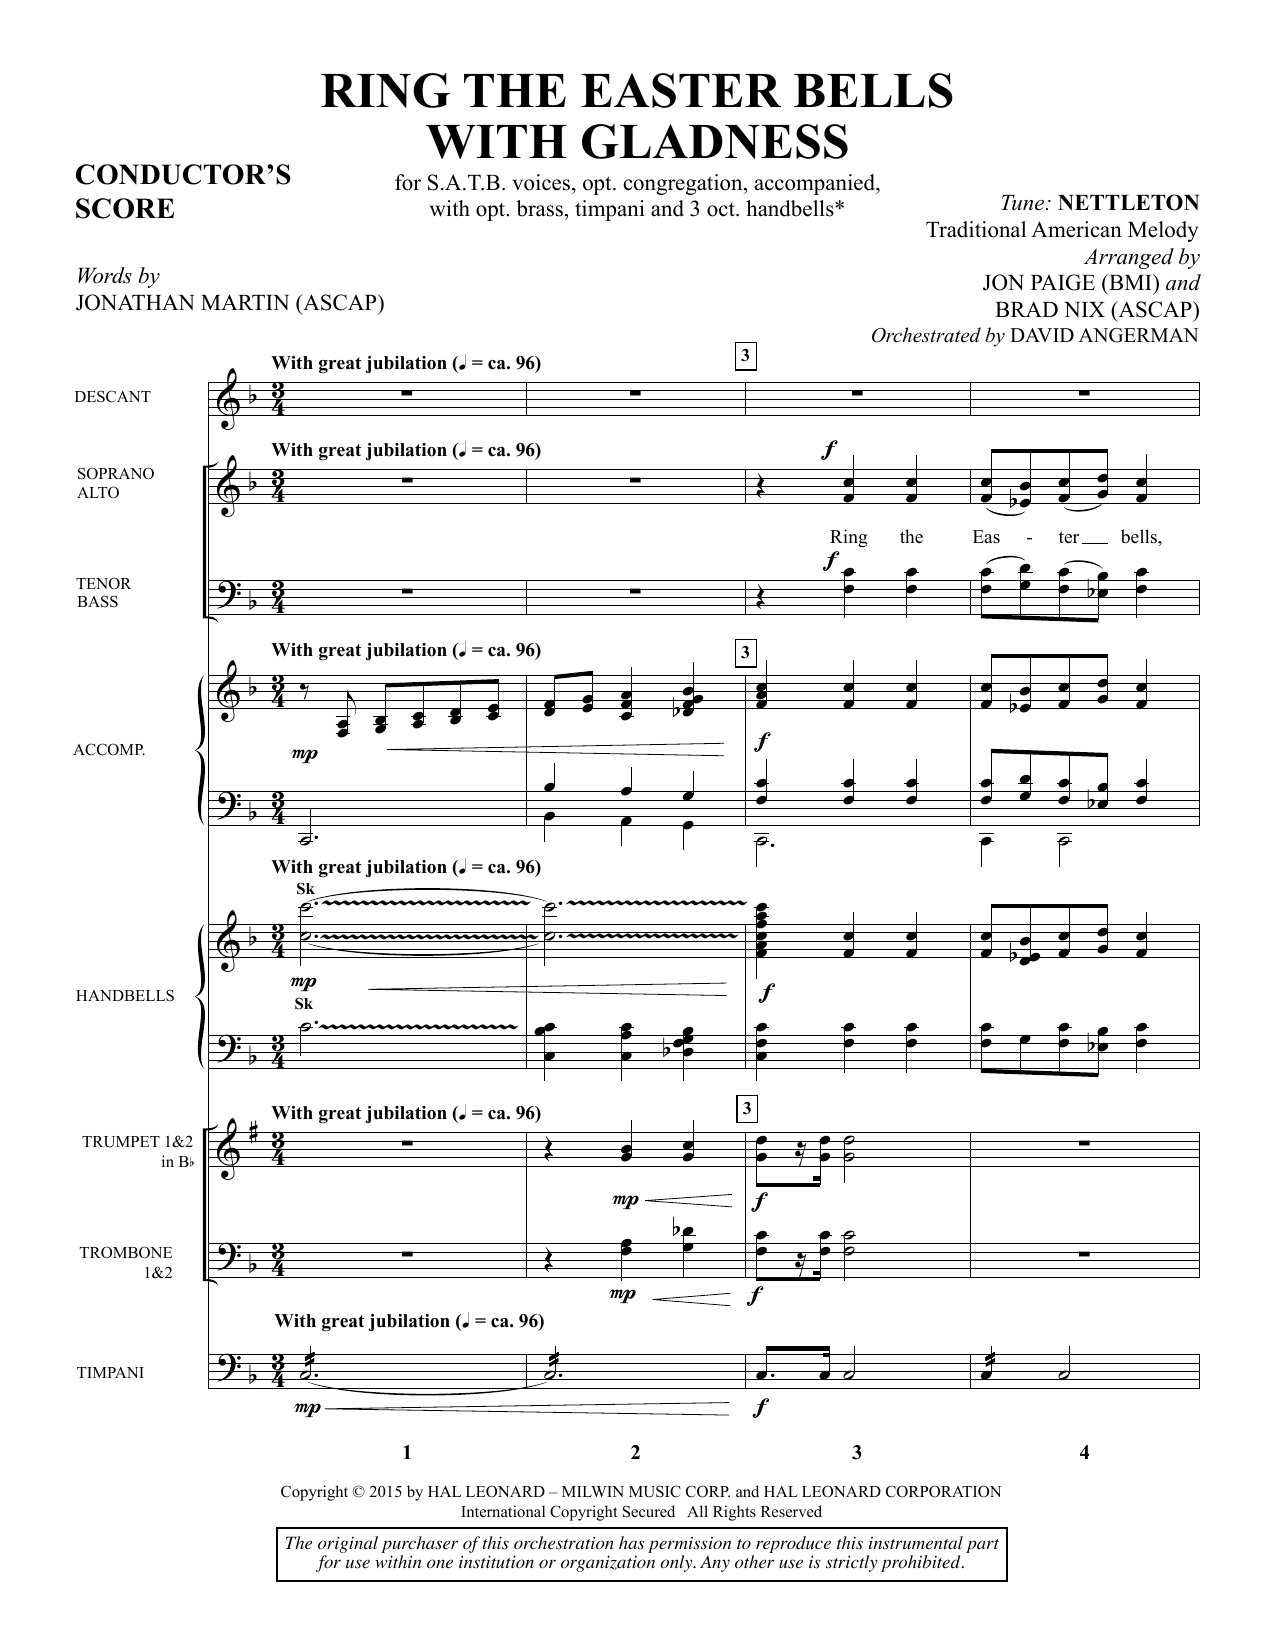 Ring the Easter Bells with Gladness - Full Score sheet music